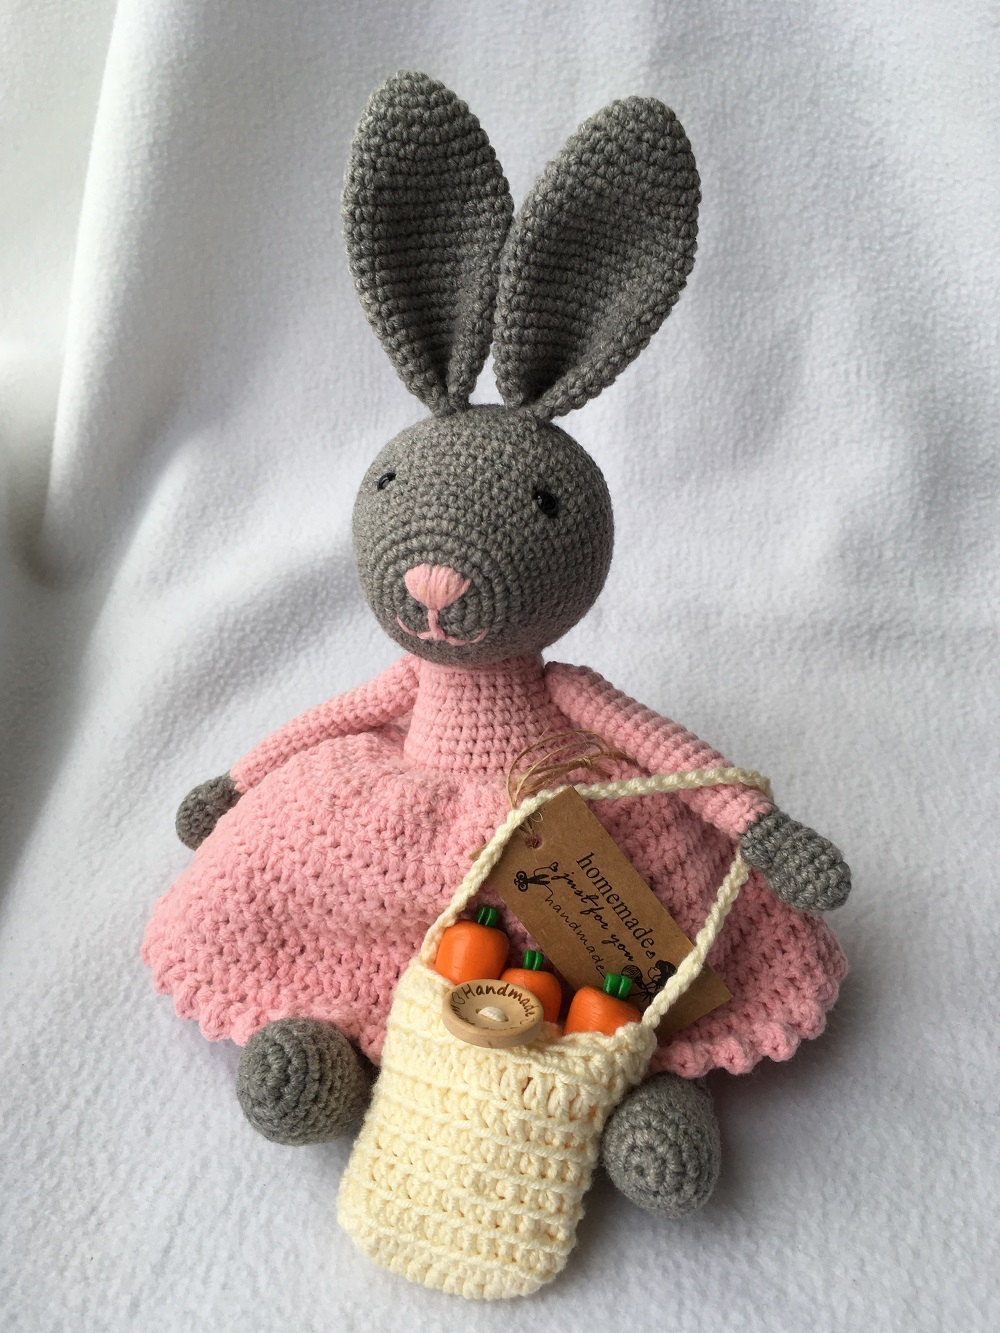 Victorian style knitted rabbit